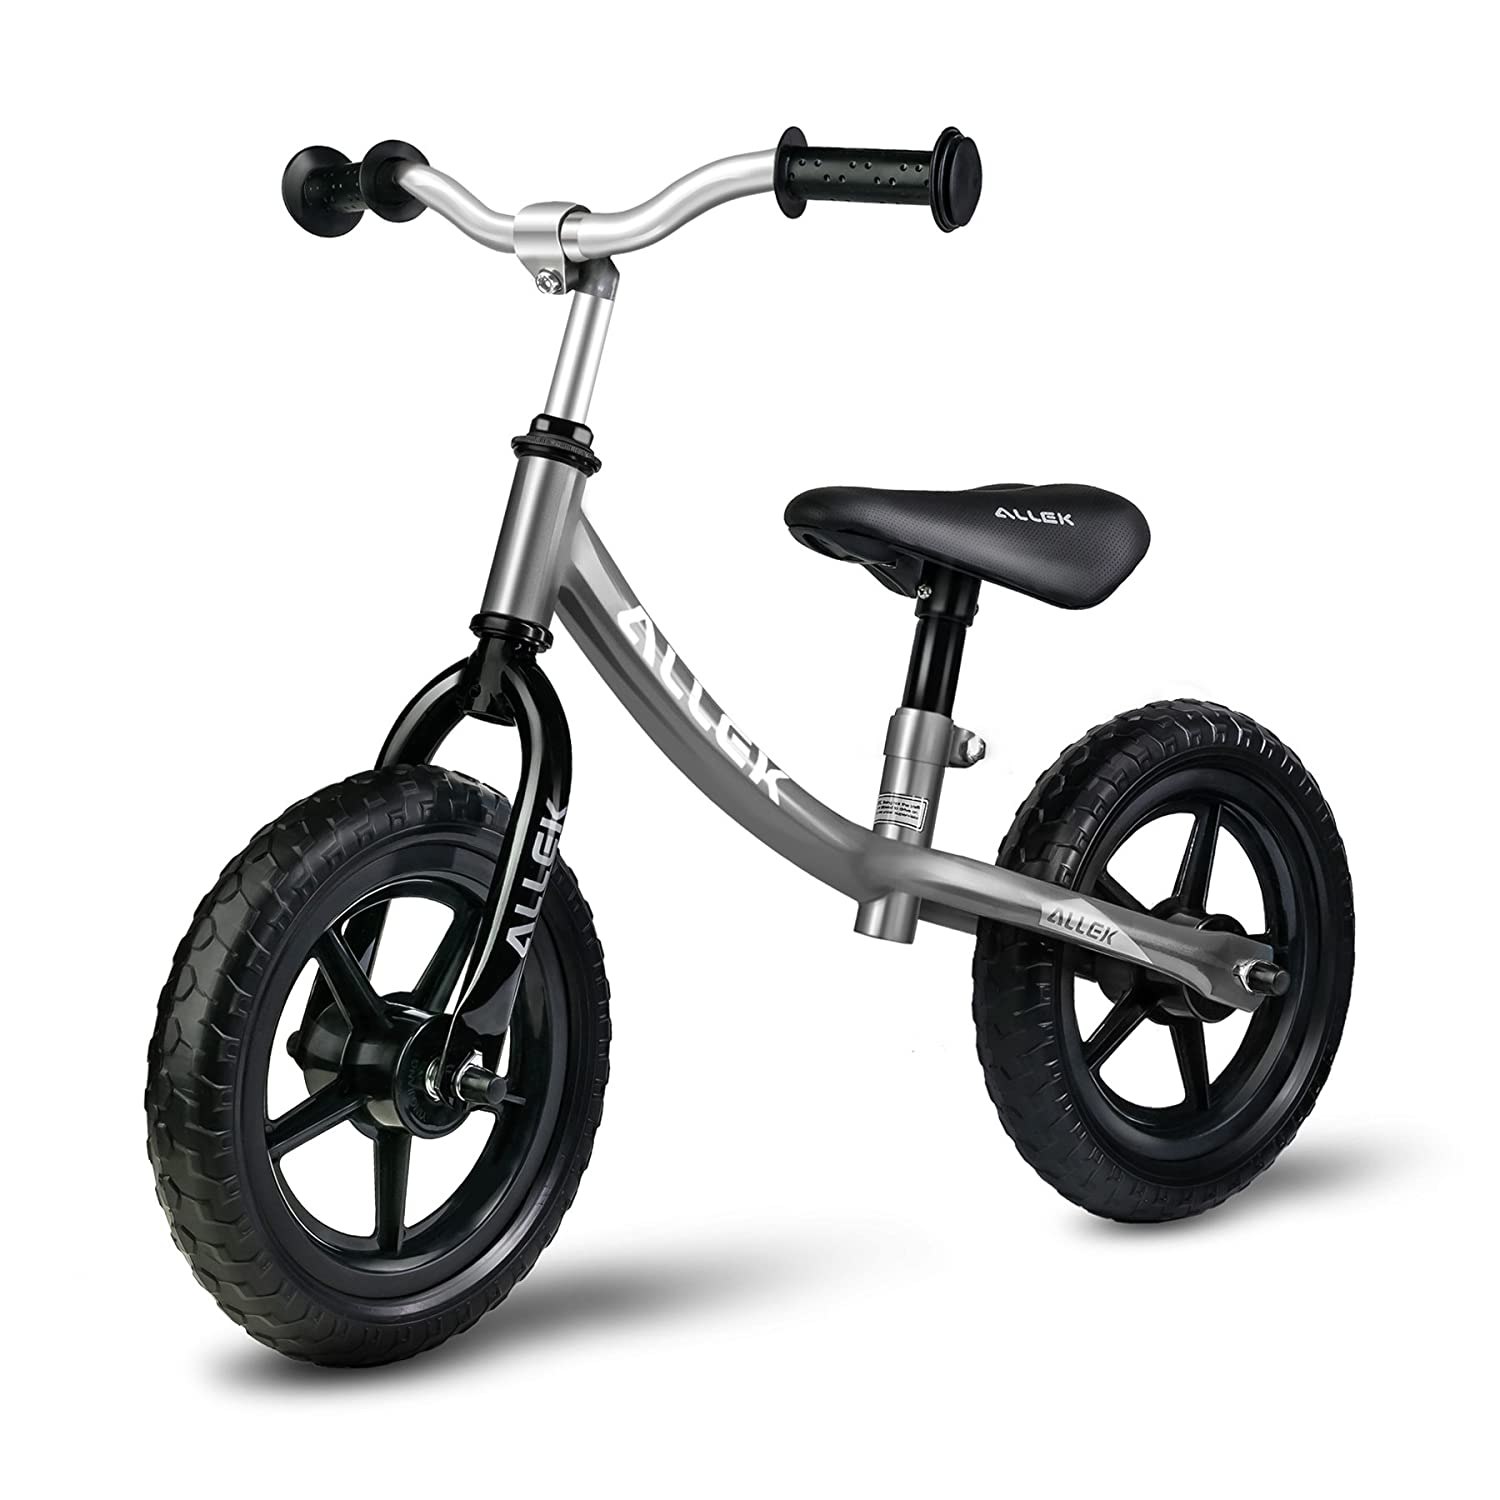 Allek Balance Bike for Kids & Toddlers, 12 No-Pedal Run Bicycle Perfect for Balance Training 18 Month to 6 Year Old Child Allek Kid Balance Bike